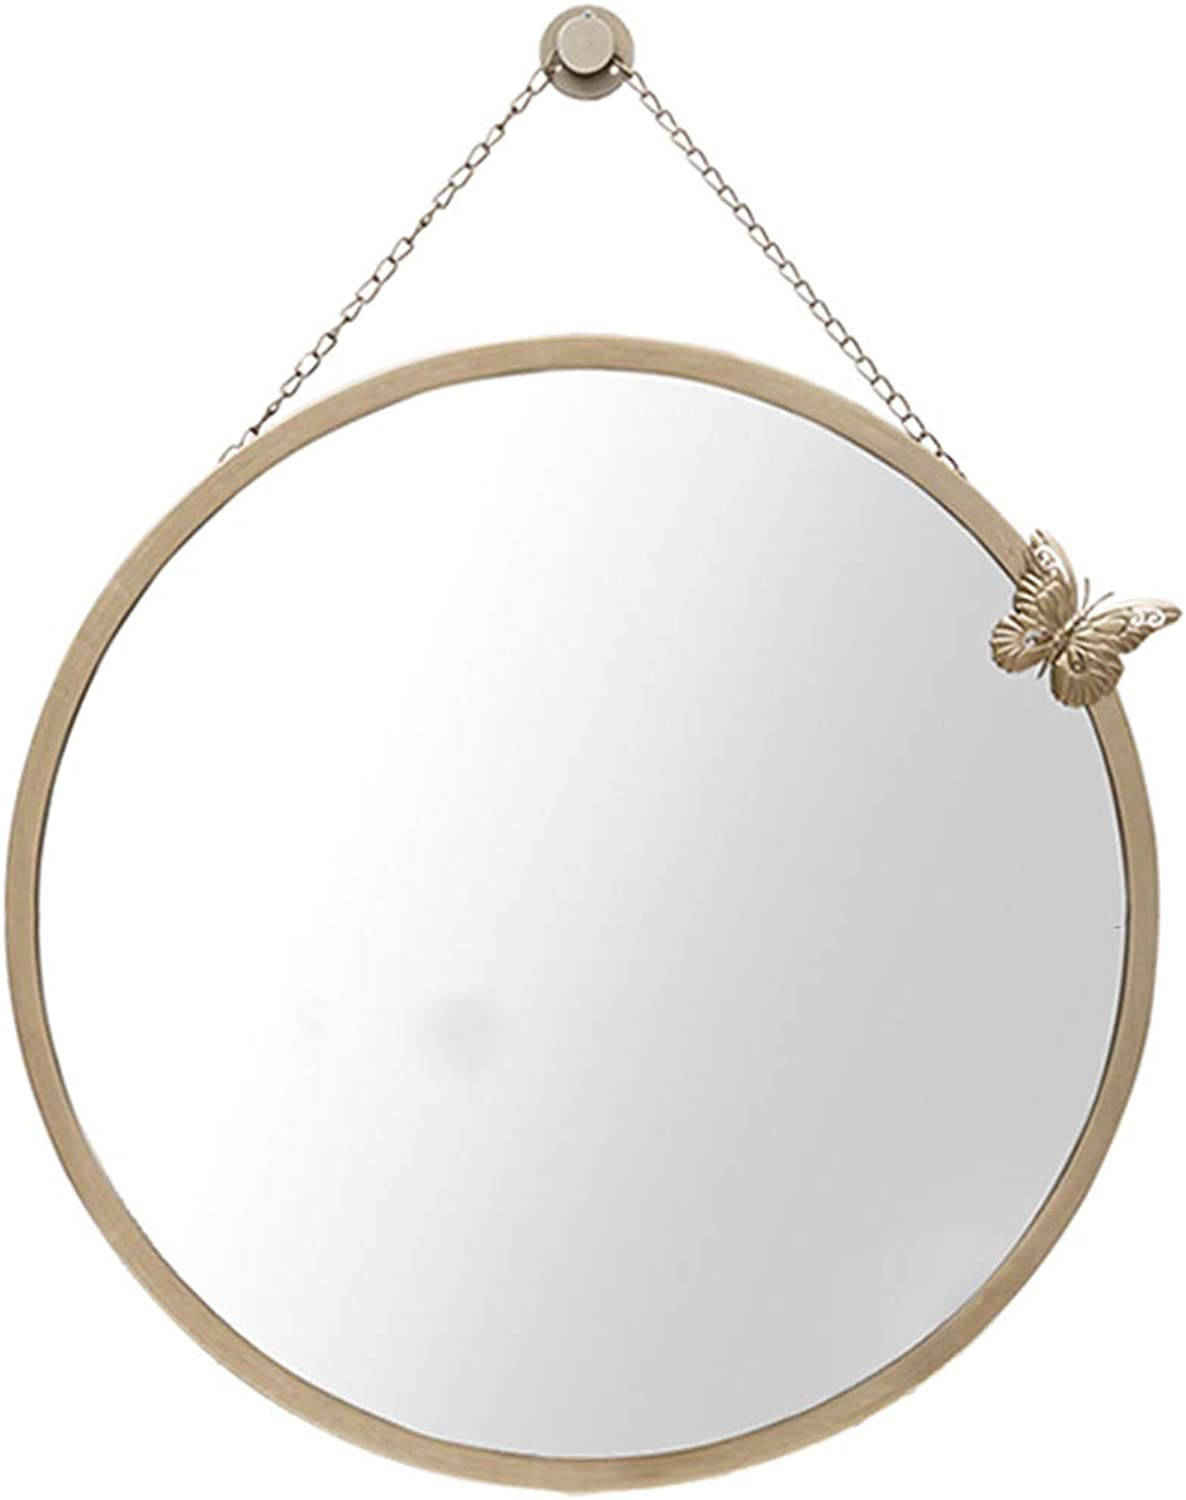 Wall Mirror,Decorative Mirror,Hanging Mirror,Exquisite Appearance,Clear Imaging,Suitable for Vanity,Bathroom,Bedroom,Gym,Hallway(50x50cm),gold